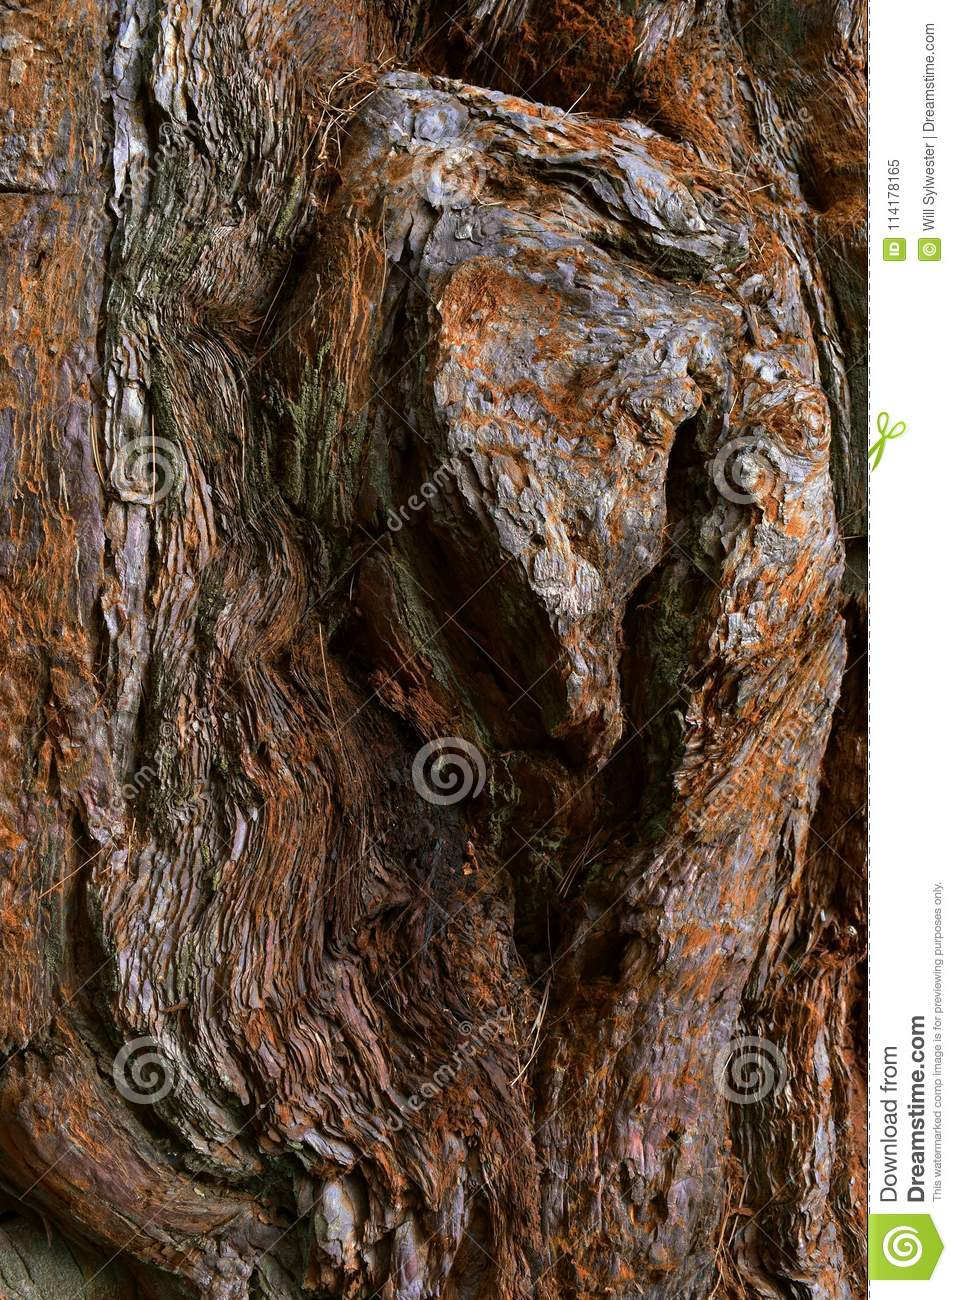 Kings Canyon, California - February 12 2018: Textures on the trunk of an ancient Sequoia tree in Redwood Valley